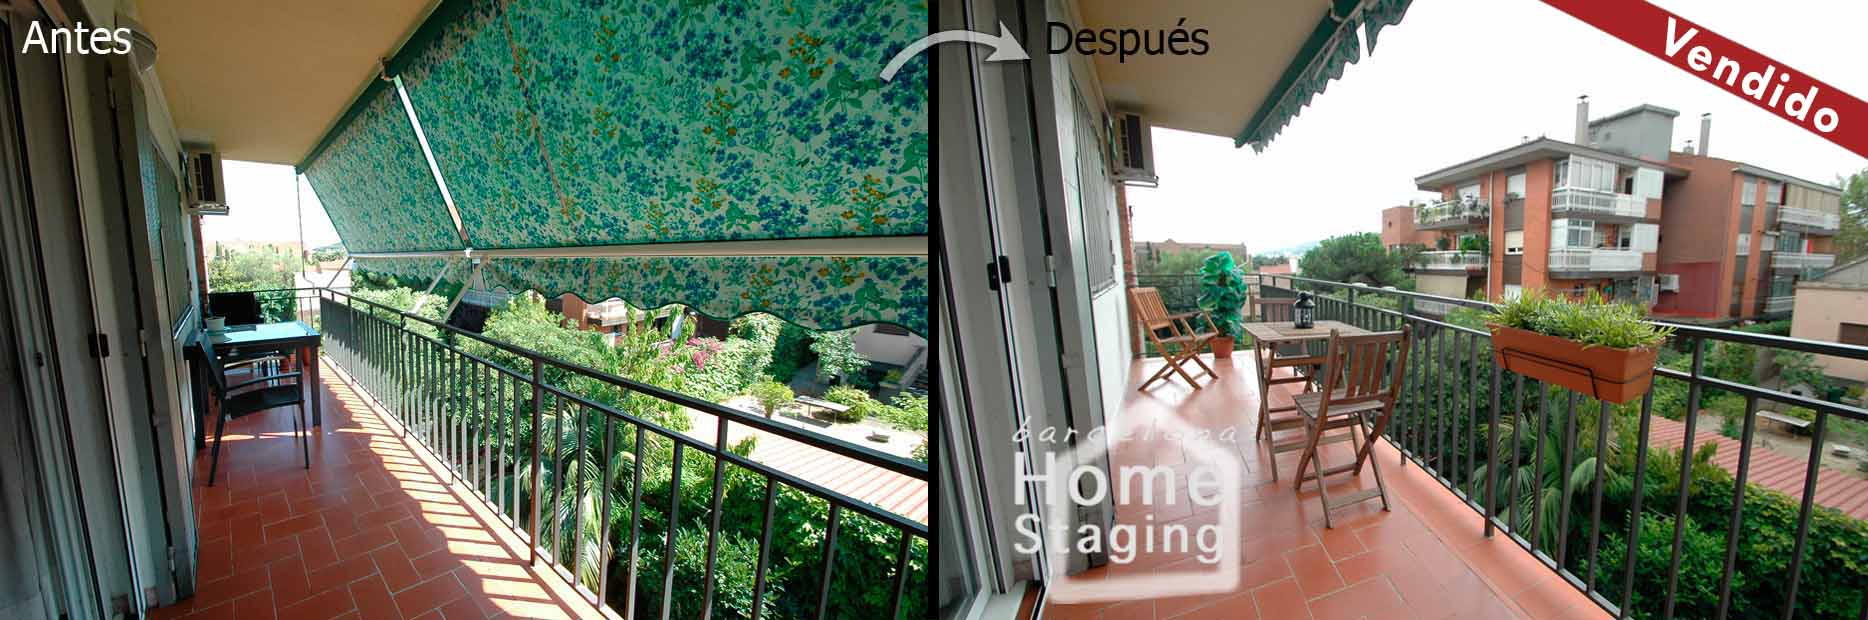 home-staging-barcelona-exterior-balcon-antes-despues